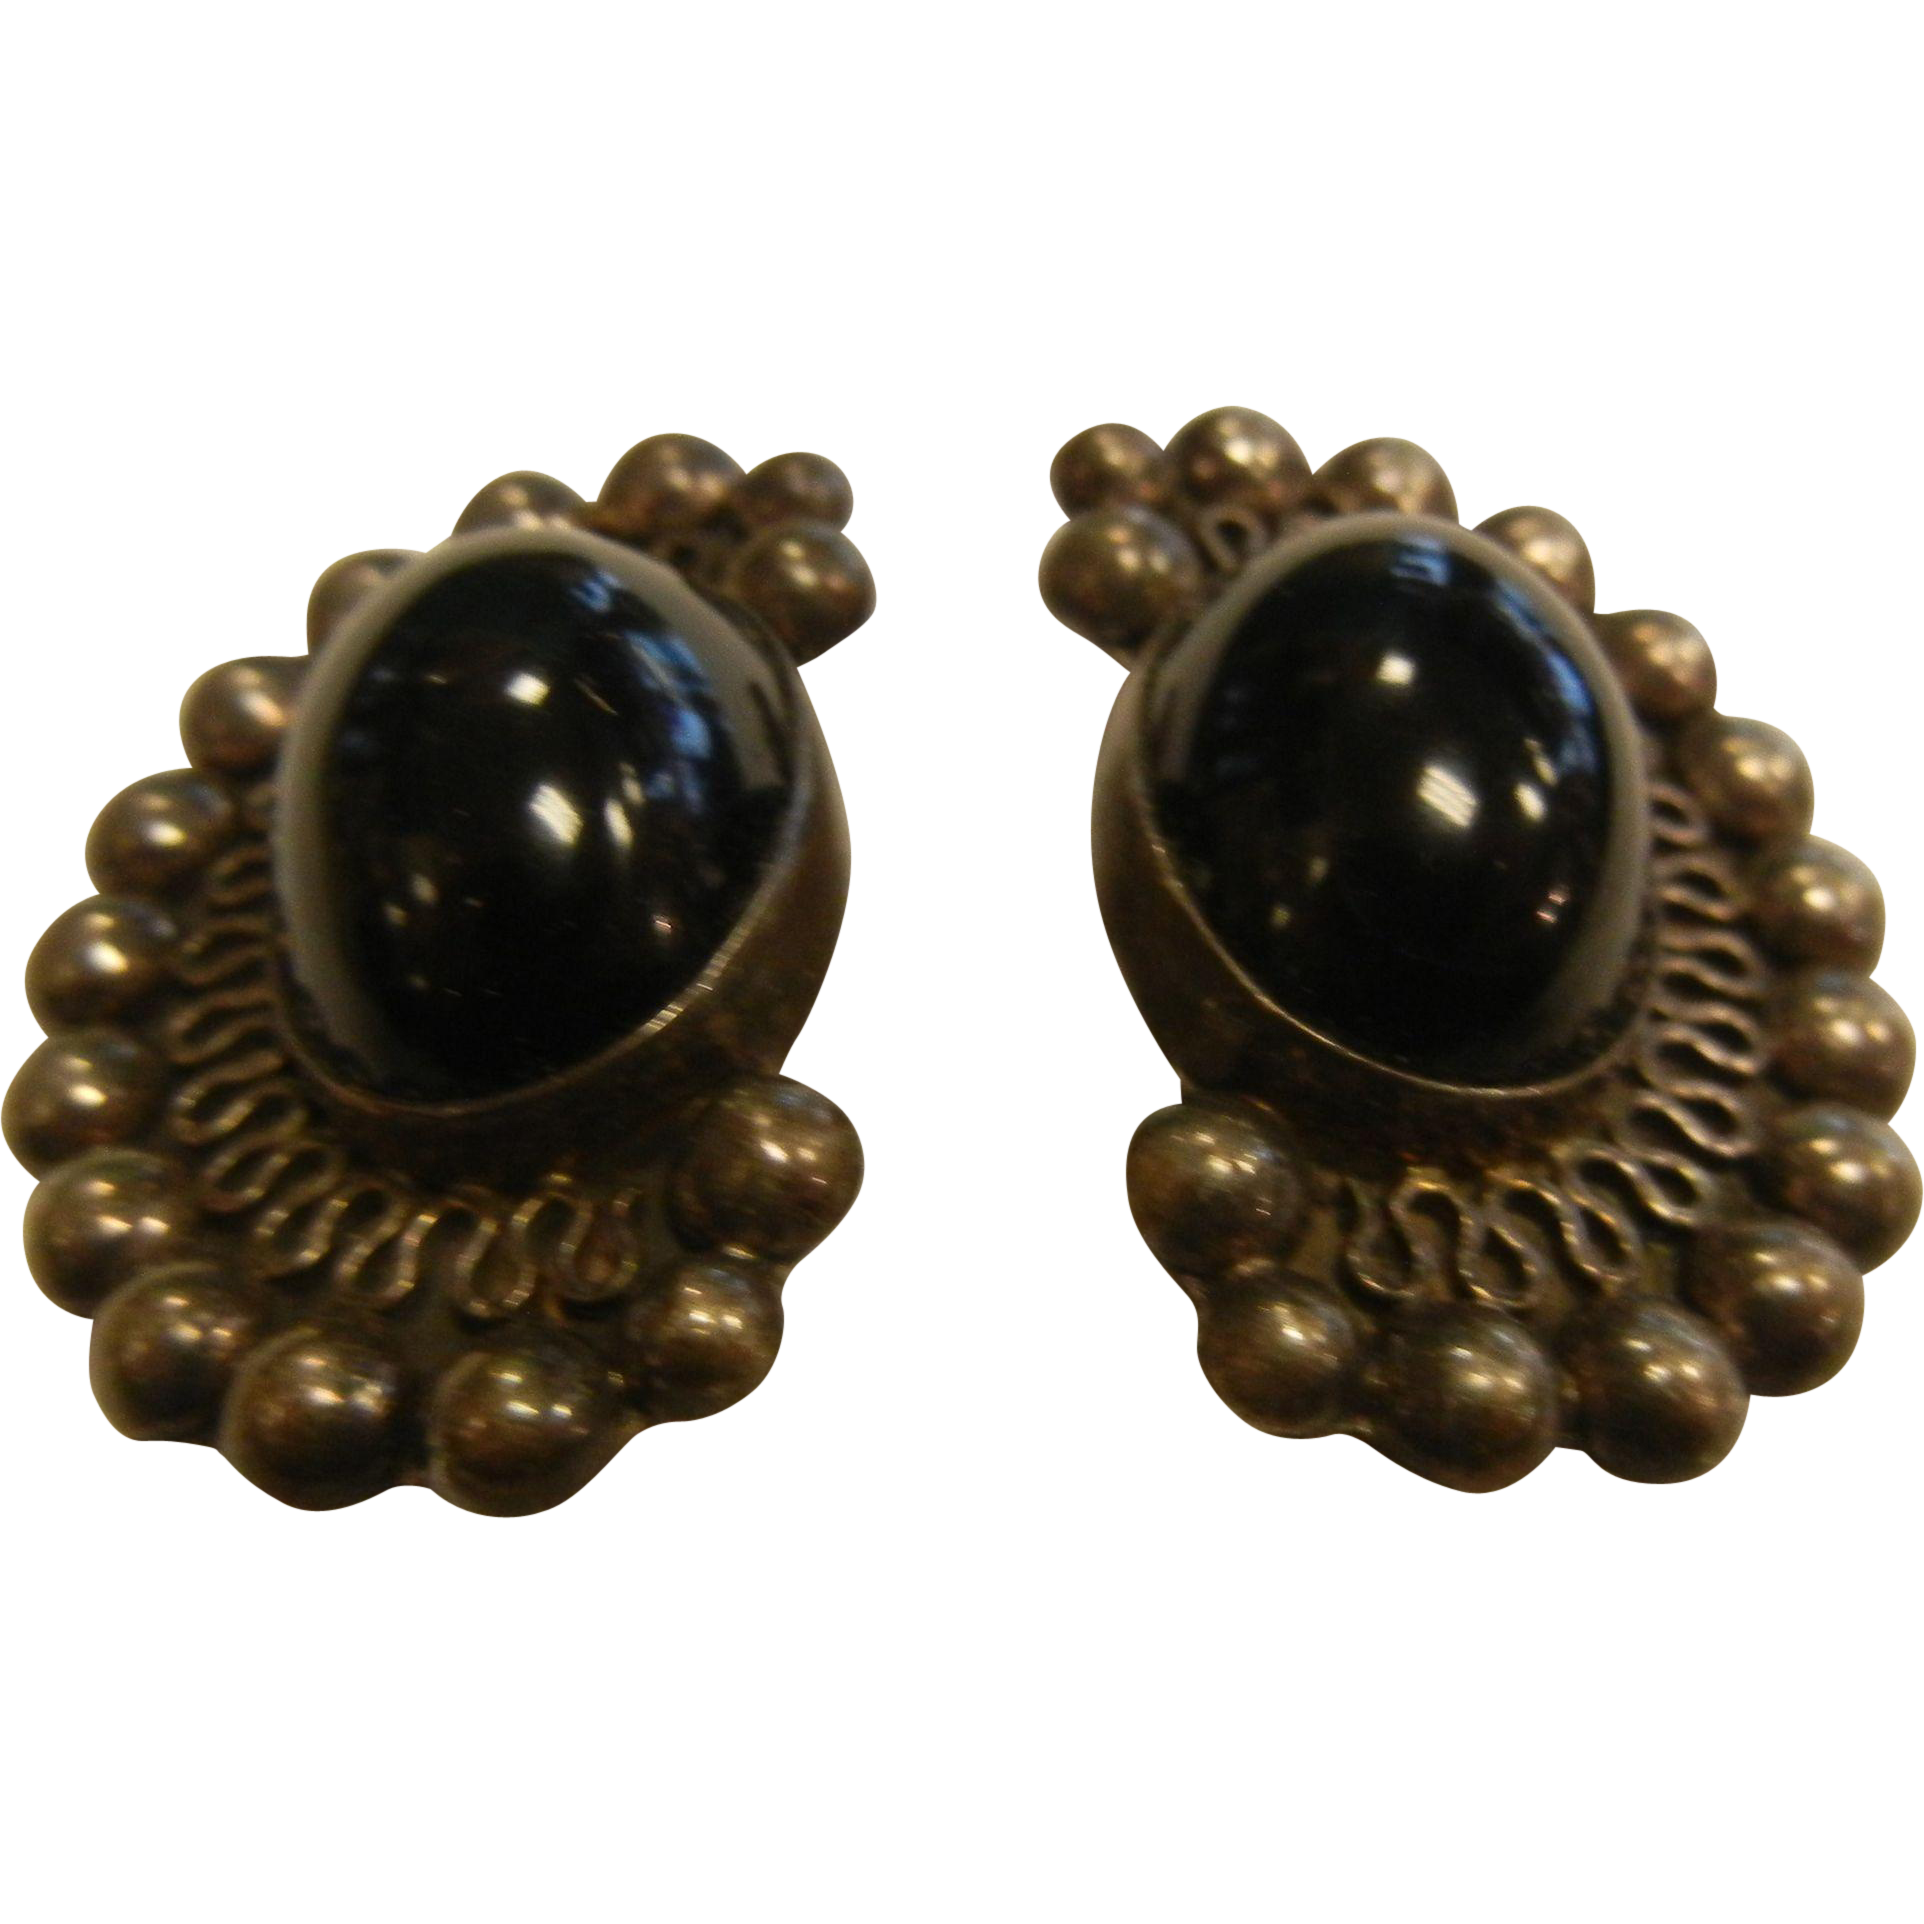 Vintage Mexico Sterling Silver Clip Earrings w/ Black Onyx Cabochons